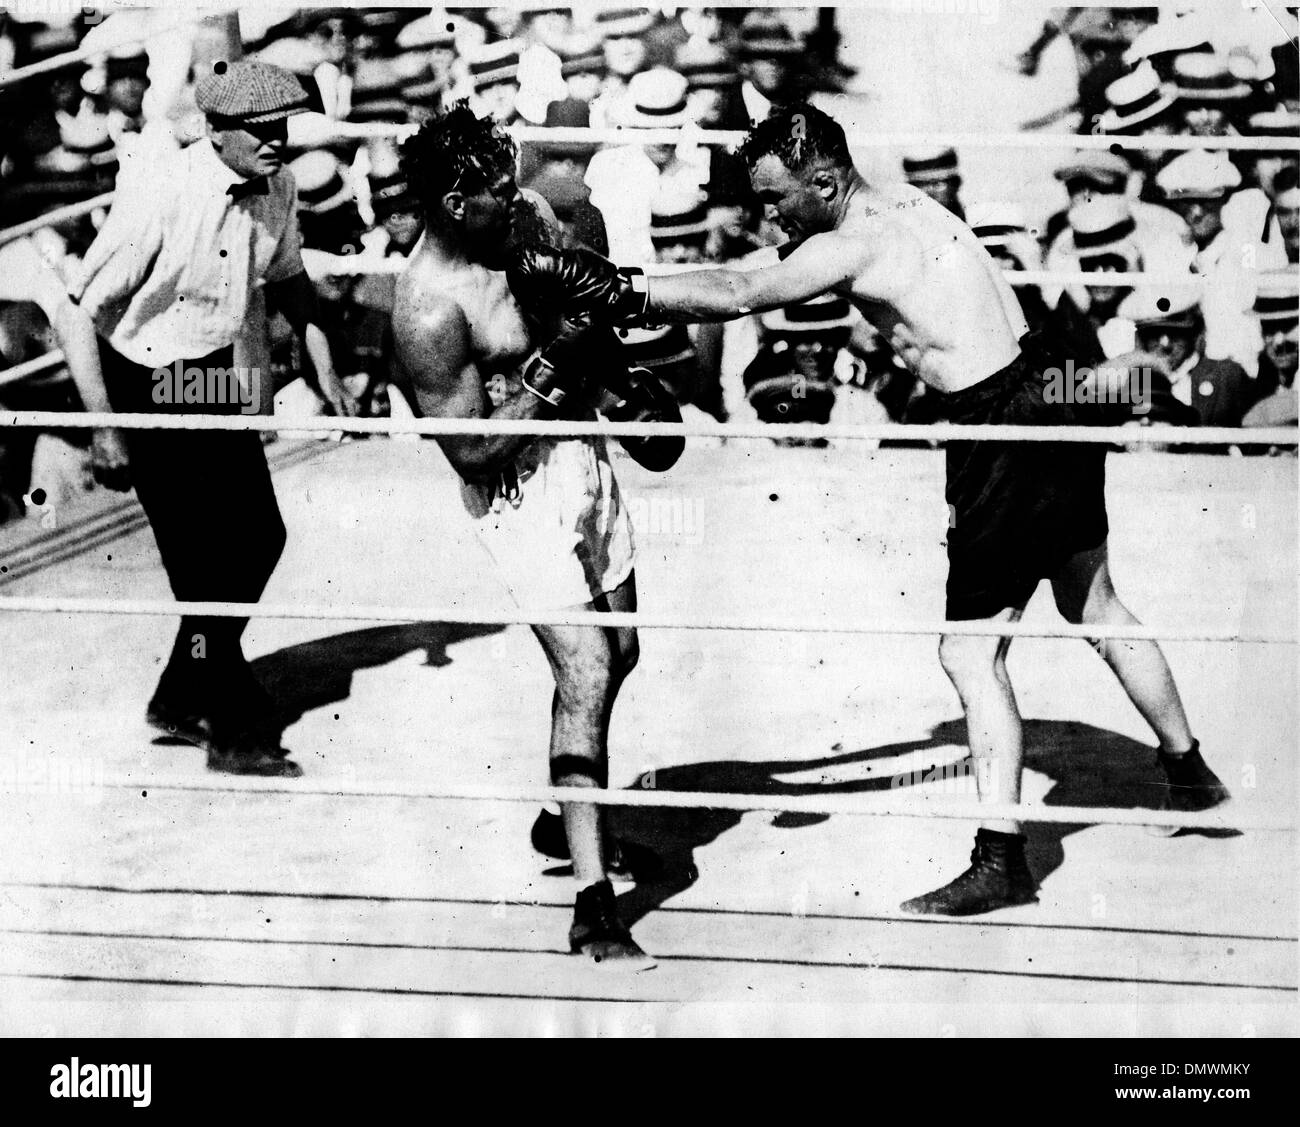 Aug. 5, 1945 - New York, NY, U.S. - JACK DEMPSEY fights (R). Jack 'Manassa Mauler' Dempsey (June 24, 1895 - May 31, 1983) was an American boxer who held the world heavyweight title from 1919 to 1926. Dempsey's aggressive style and punching power made him one of the most popular boxers in history. Many of his fights set financial and attendance records. (Credit Image: © KEYSTONE Pic - Stock Image